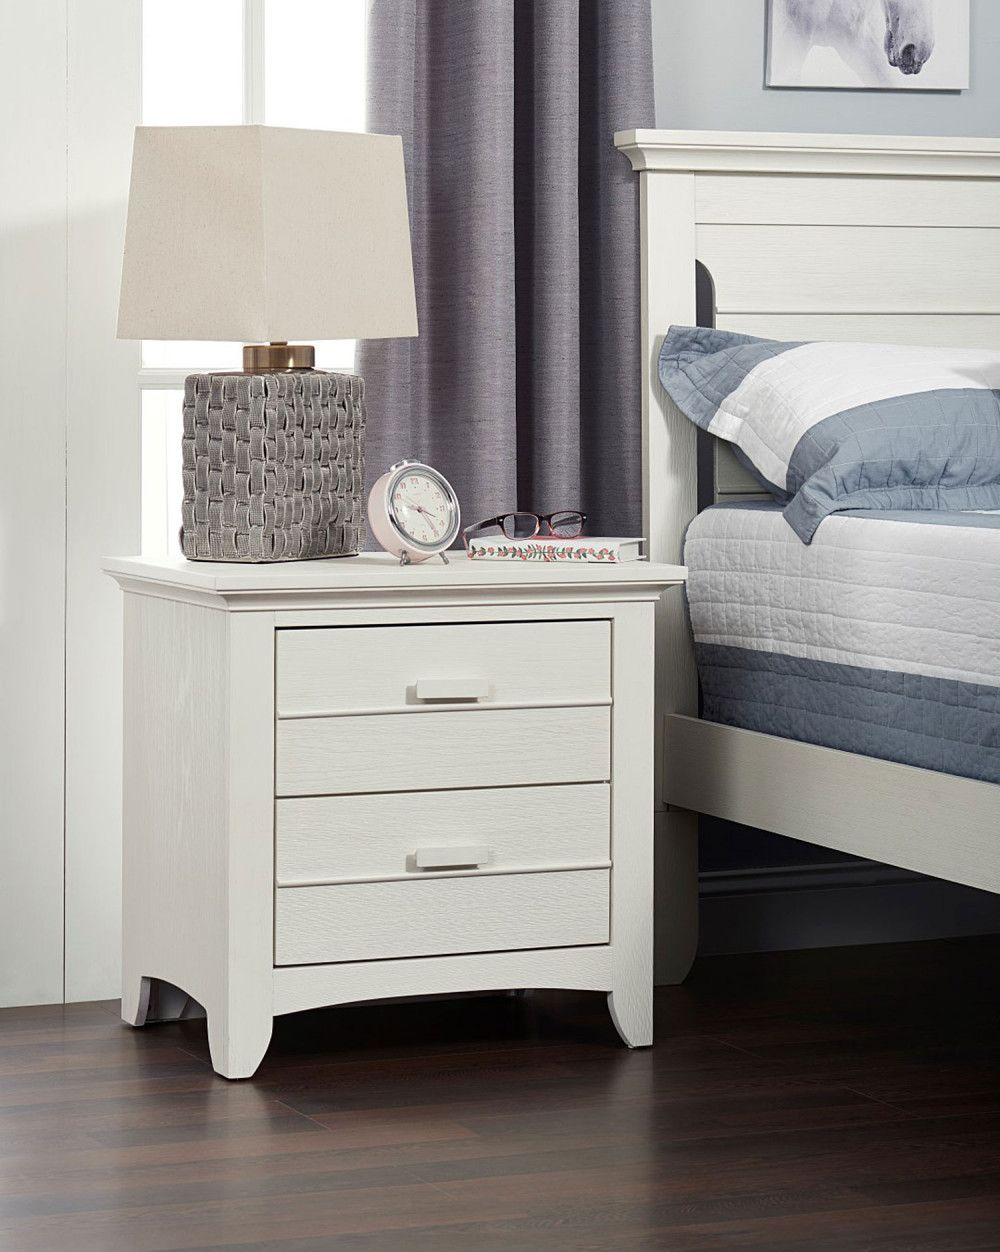 Oxford baby crestwood collection nightstand in oyster white